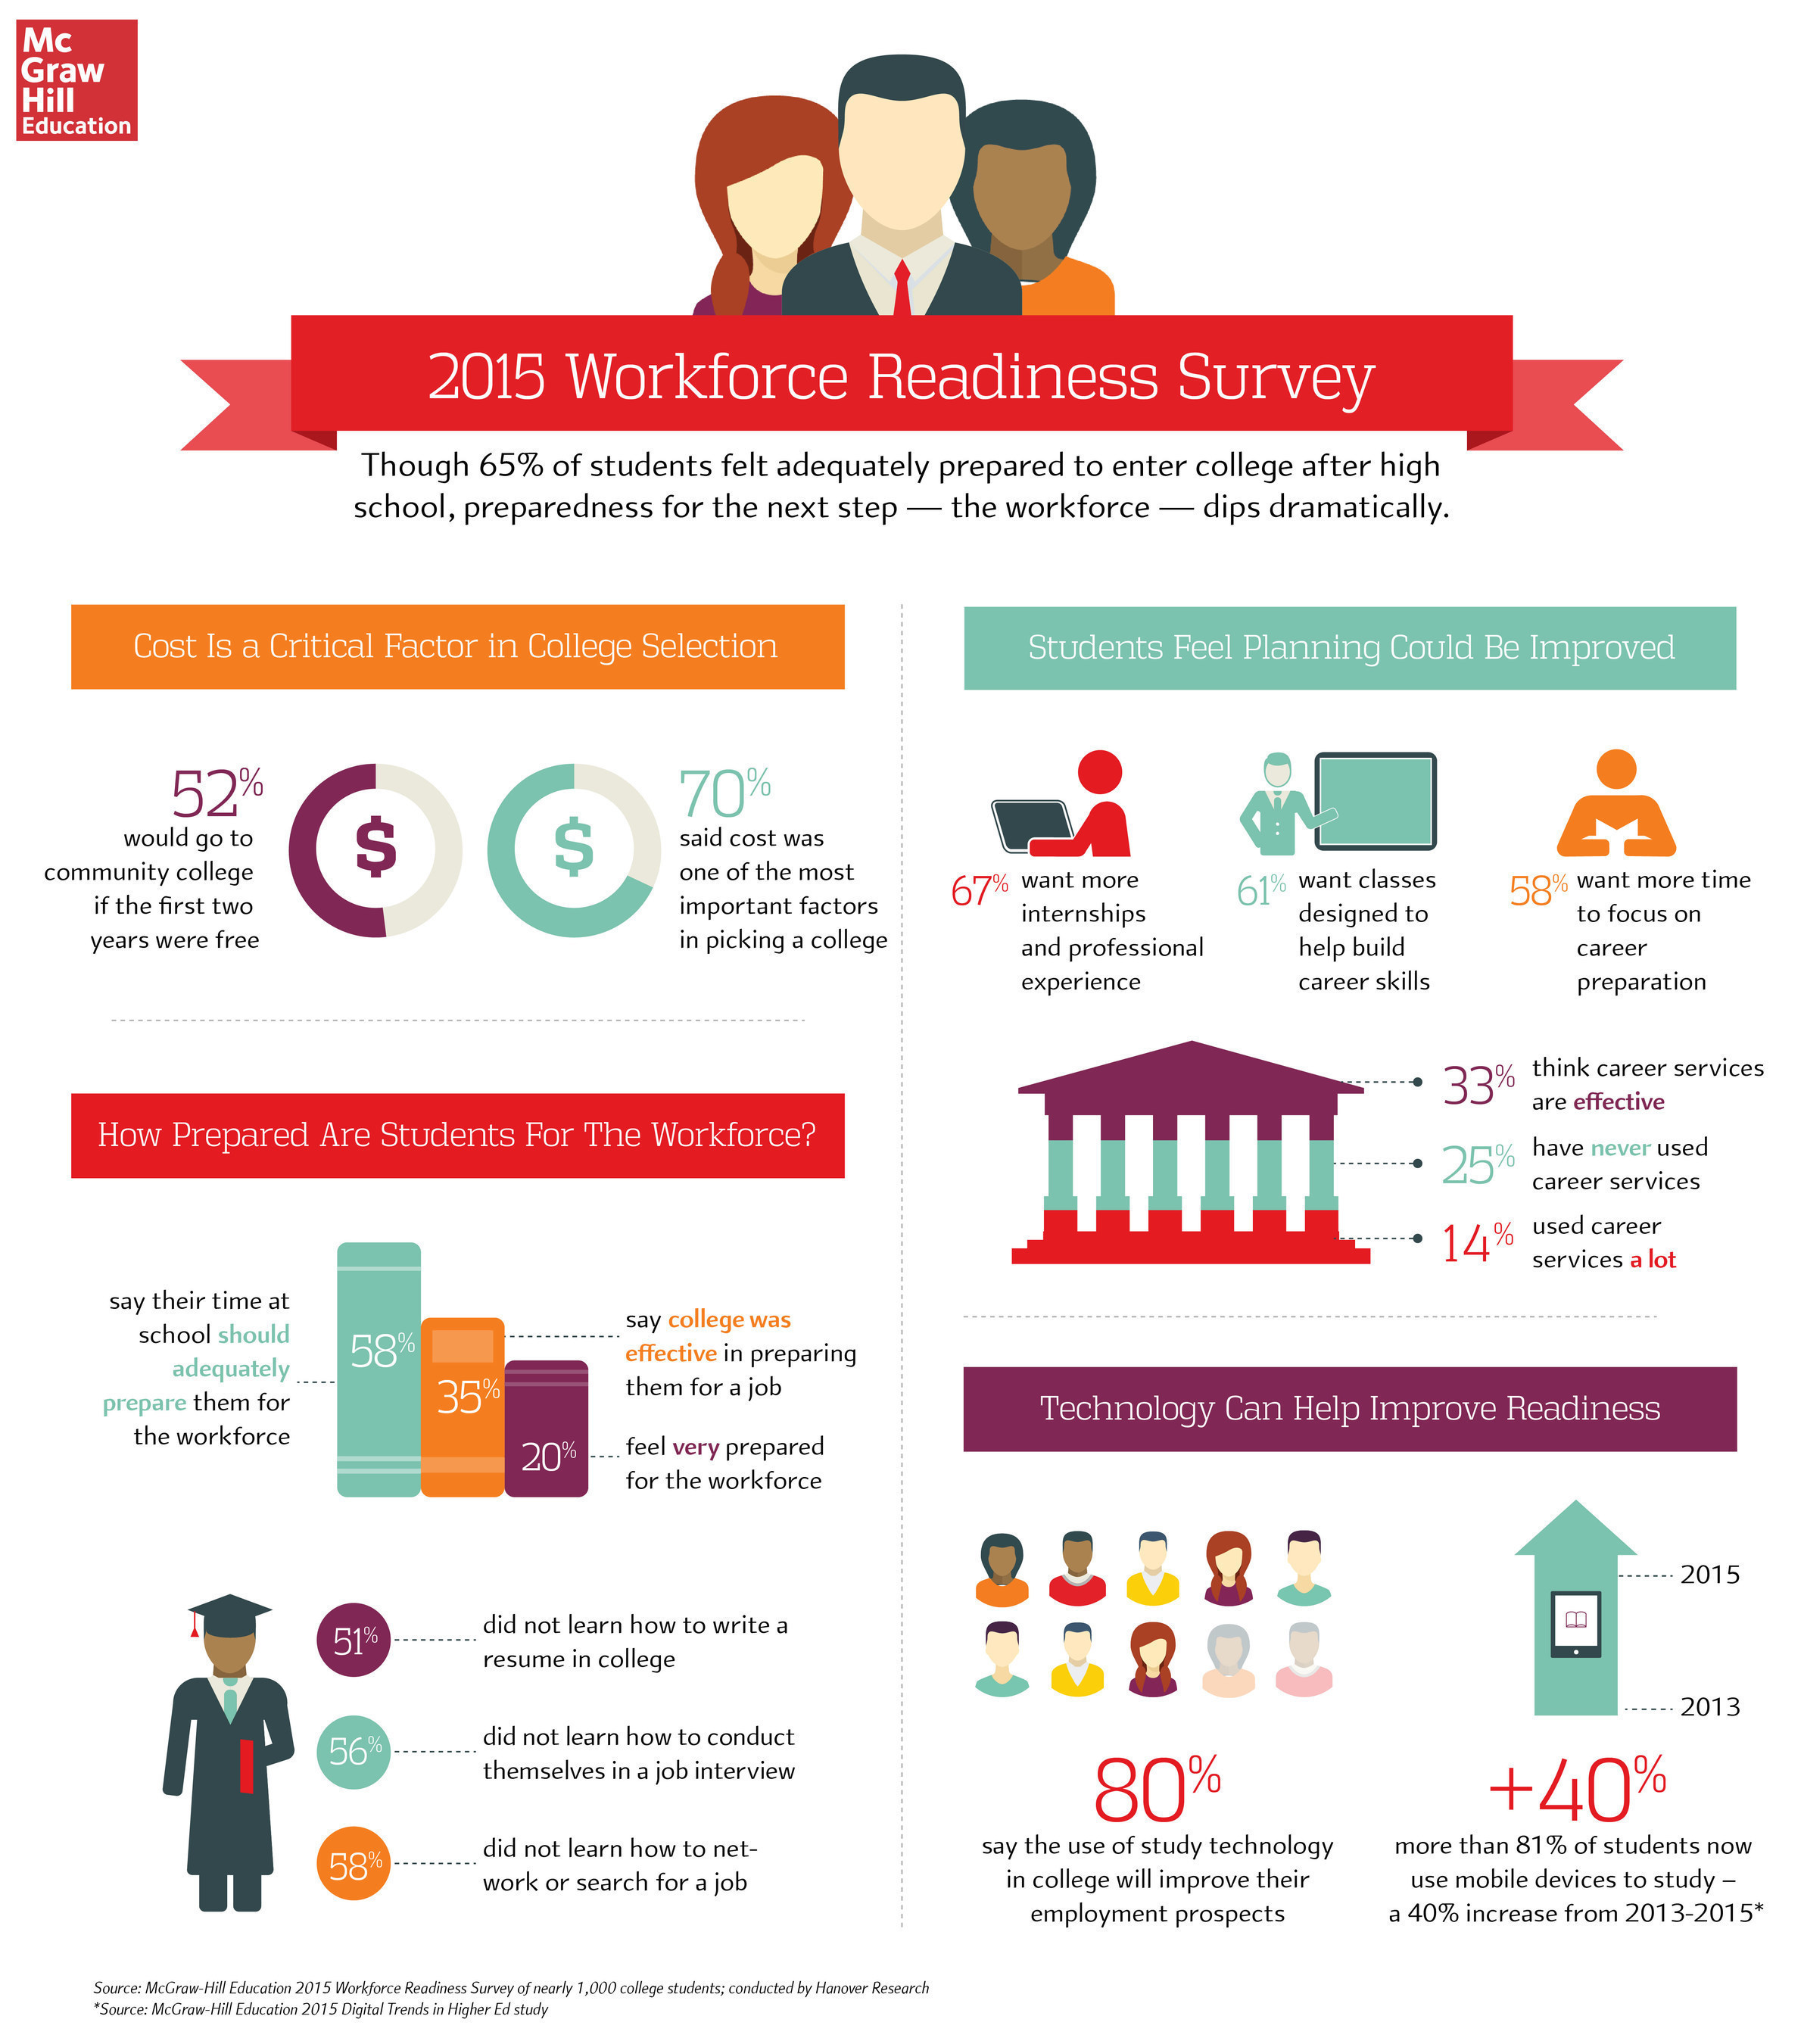 McGraw-Hill Education 2015 Workforce Readiness Survey | Infographic